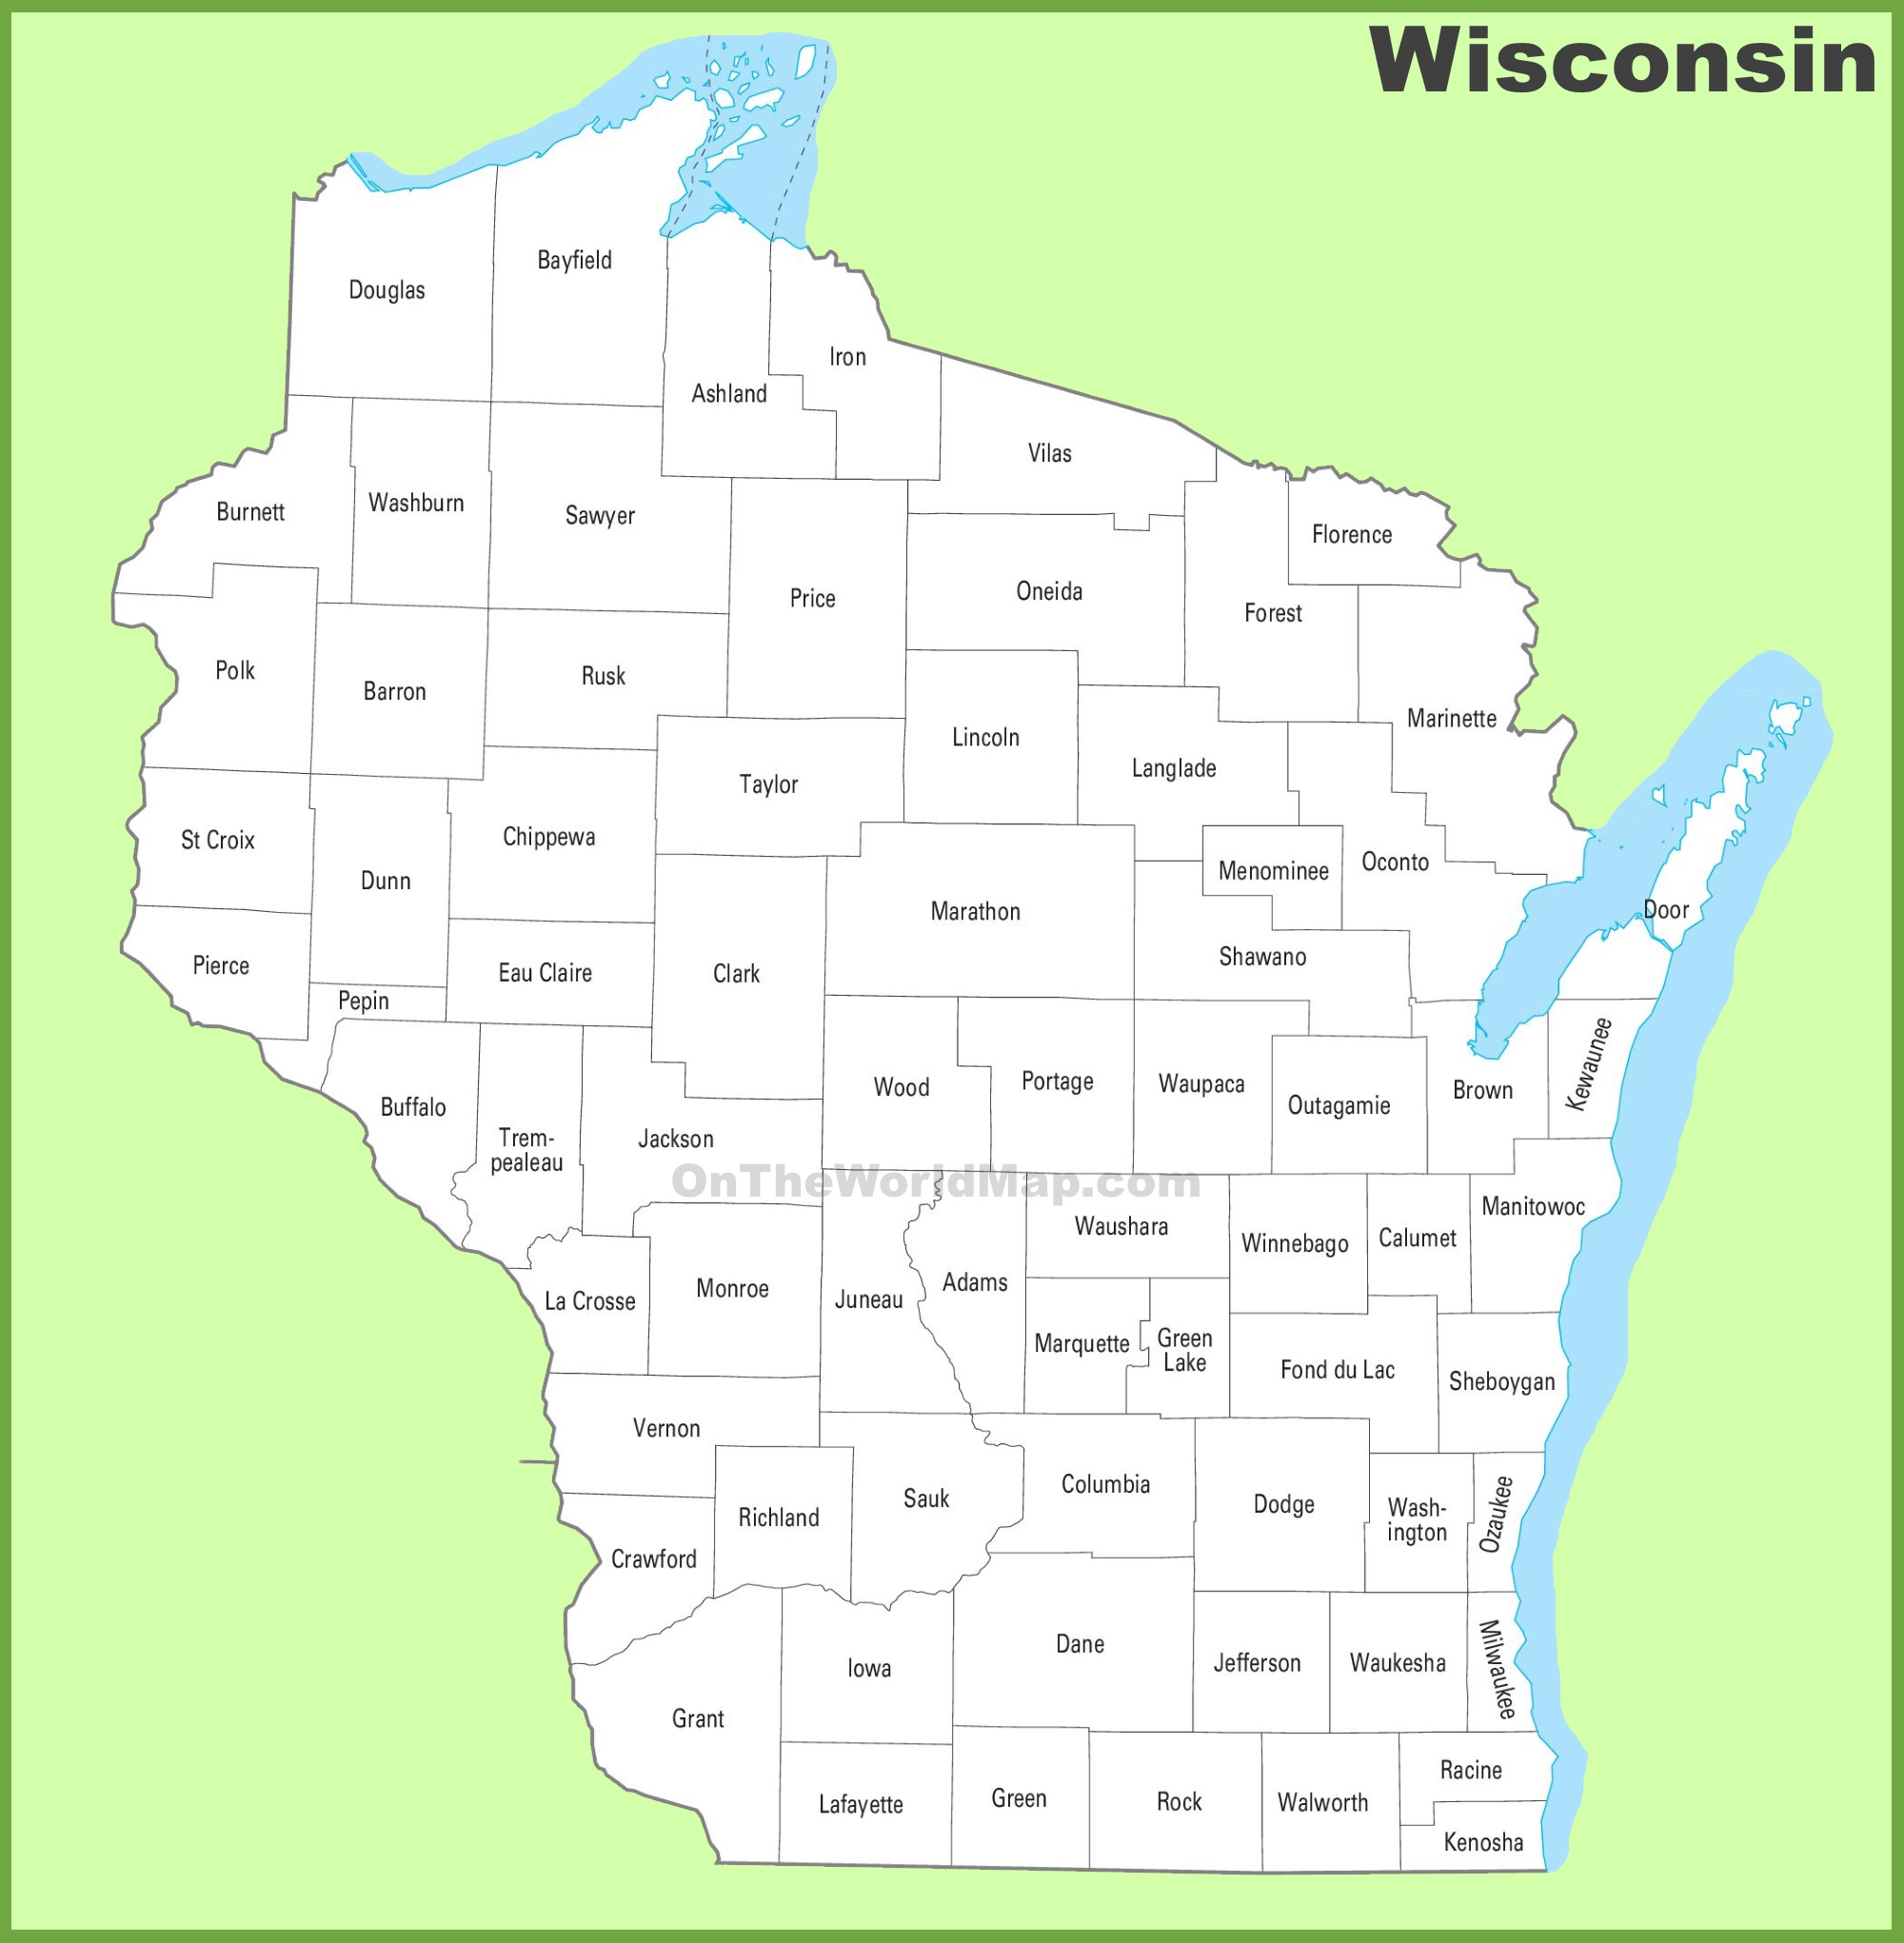 Wisconsin County Map